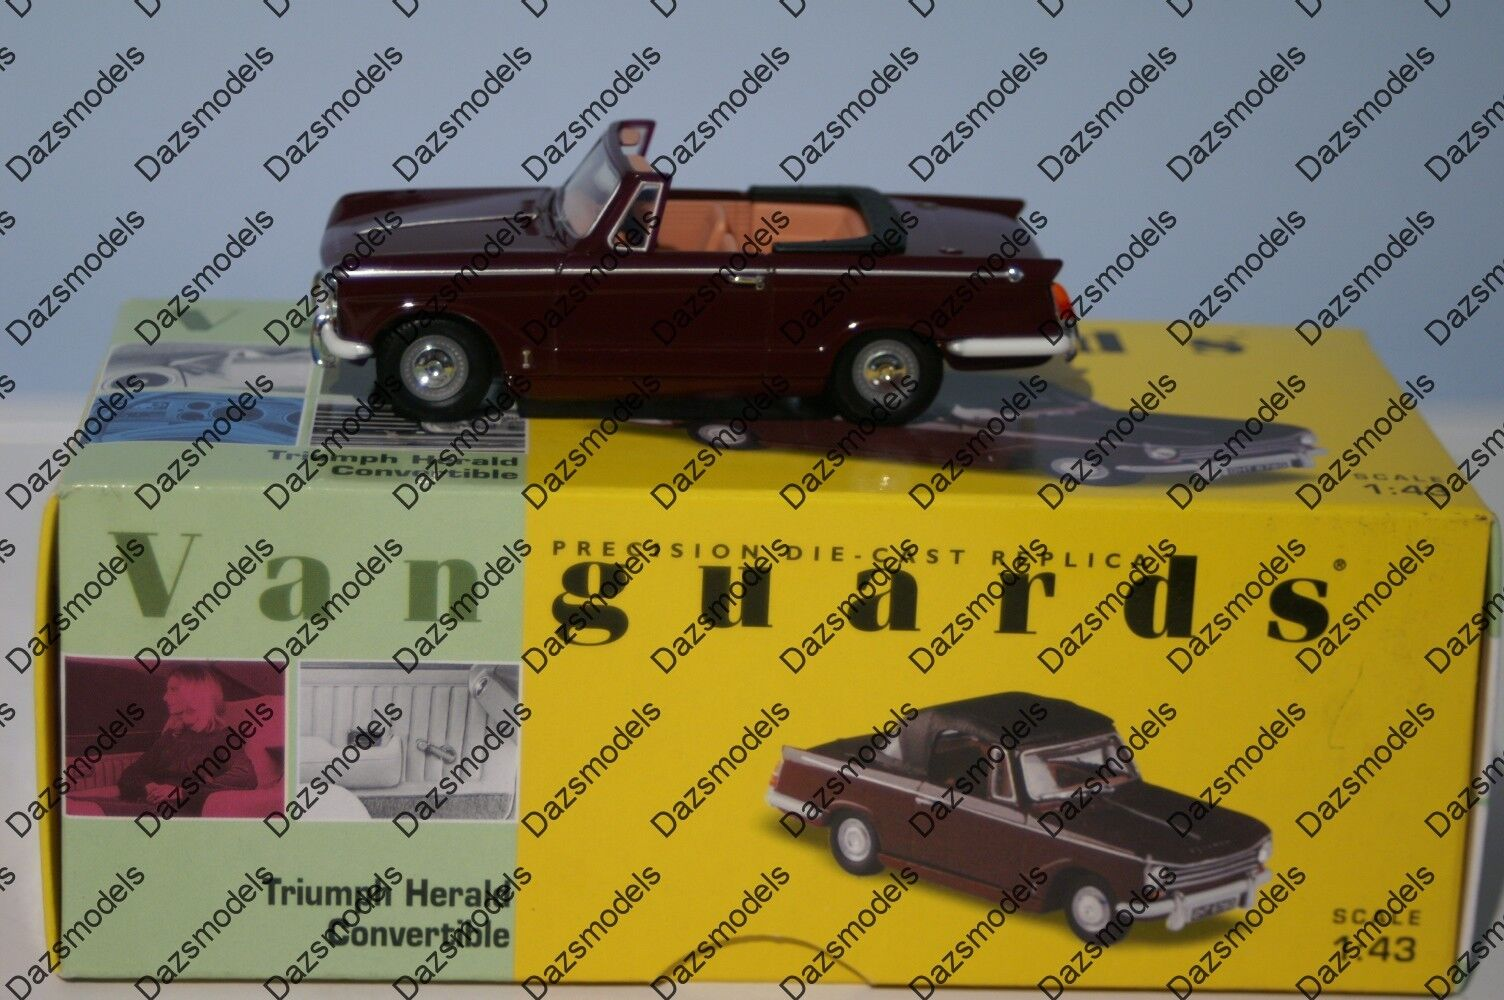 Vanguards Triumph Herald Congreenible Damson VA07400 1 43 Scale